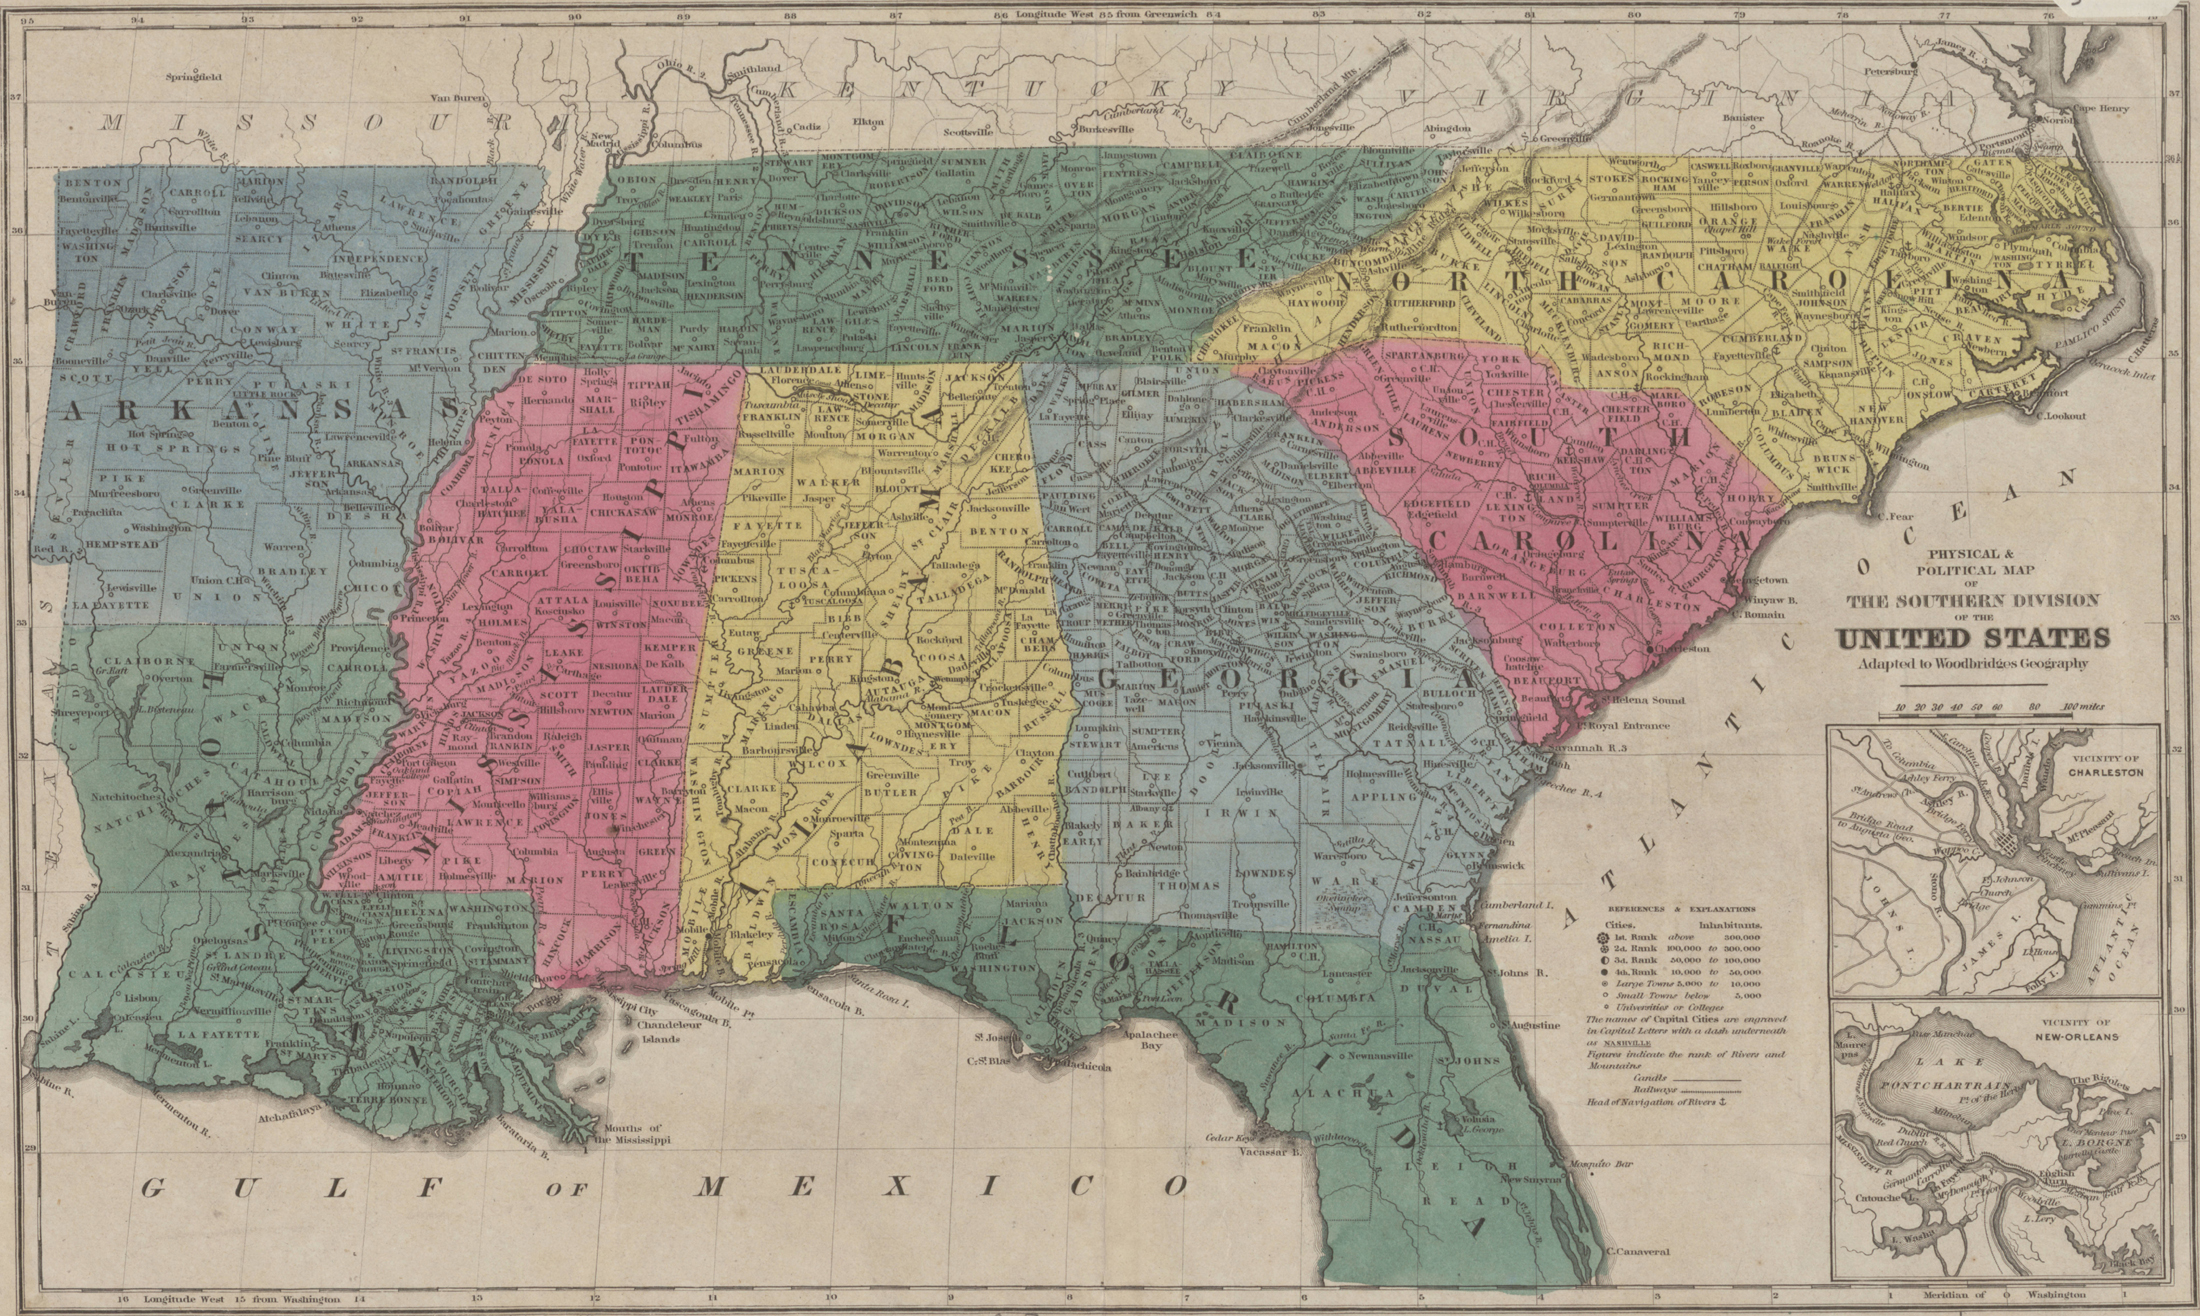 1843 Map of the Southeastern United States - English